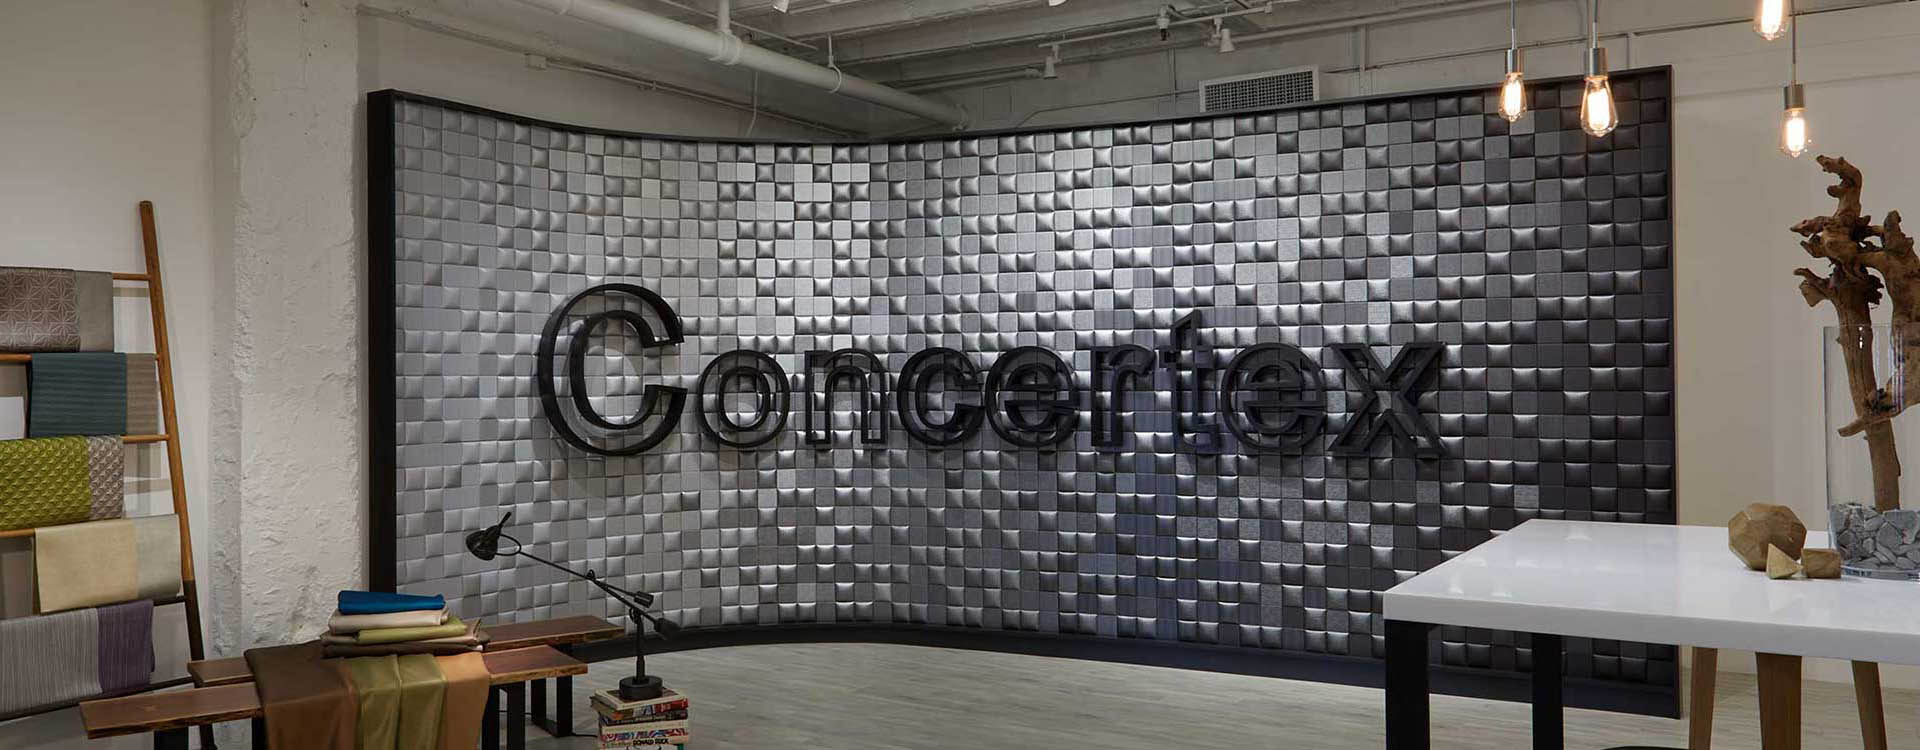 Concertex Showroom